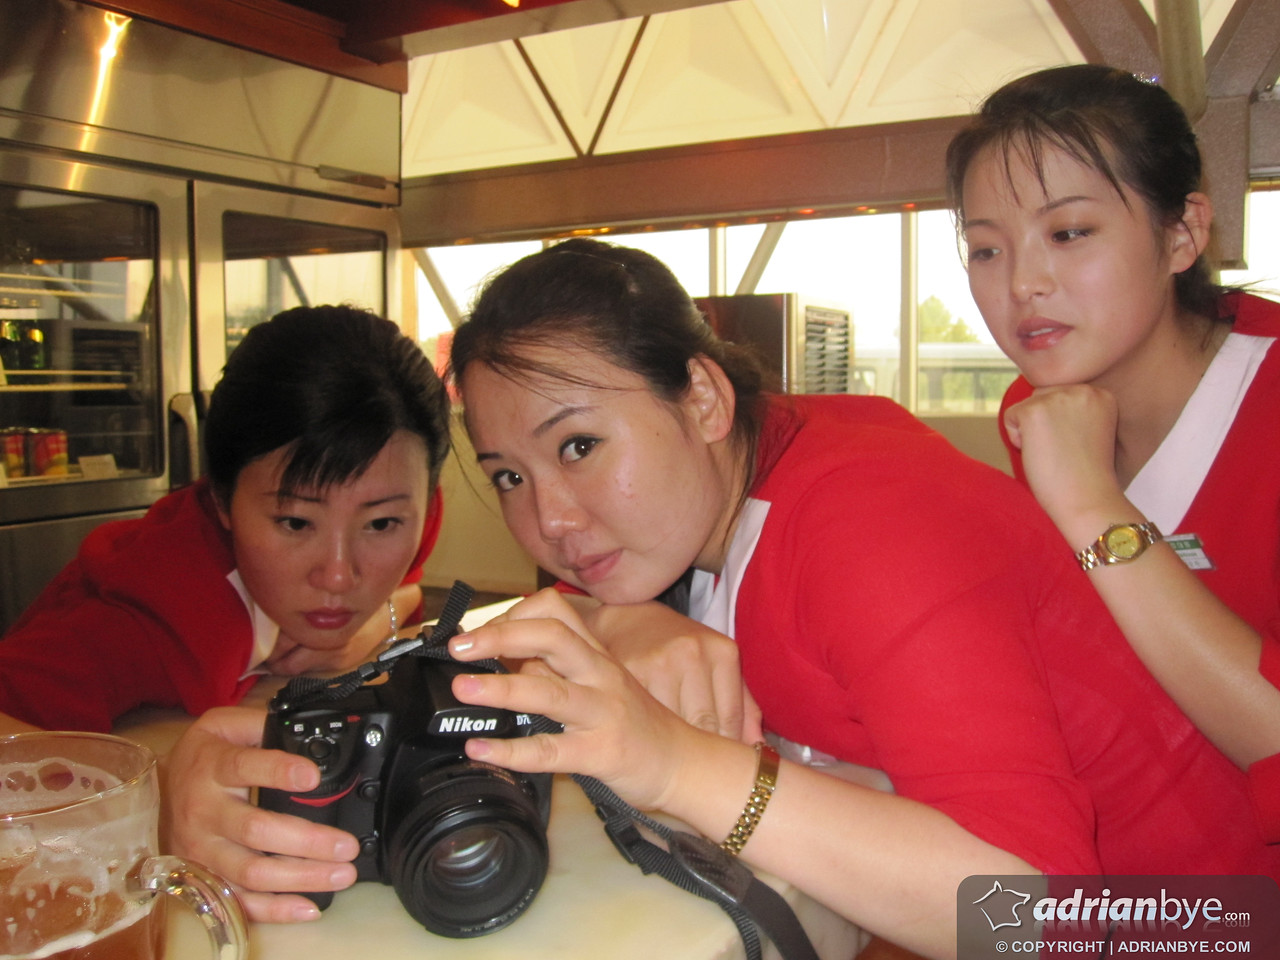 A group of the waitresses checking out my camera; they were fascinated by it